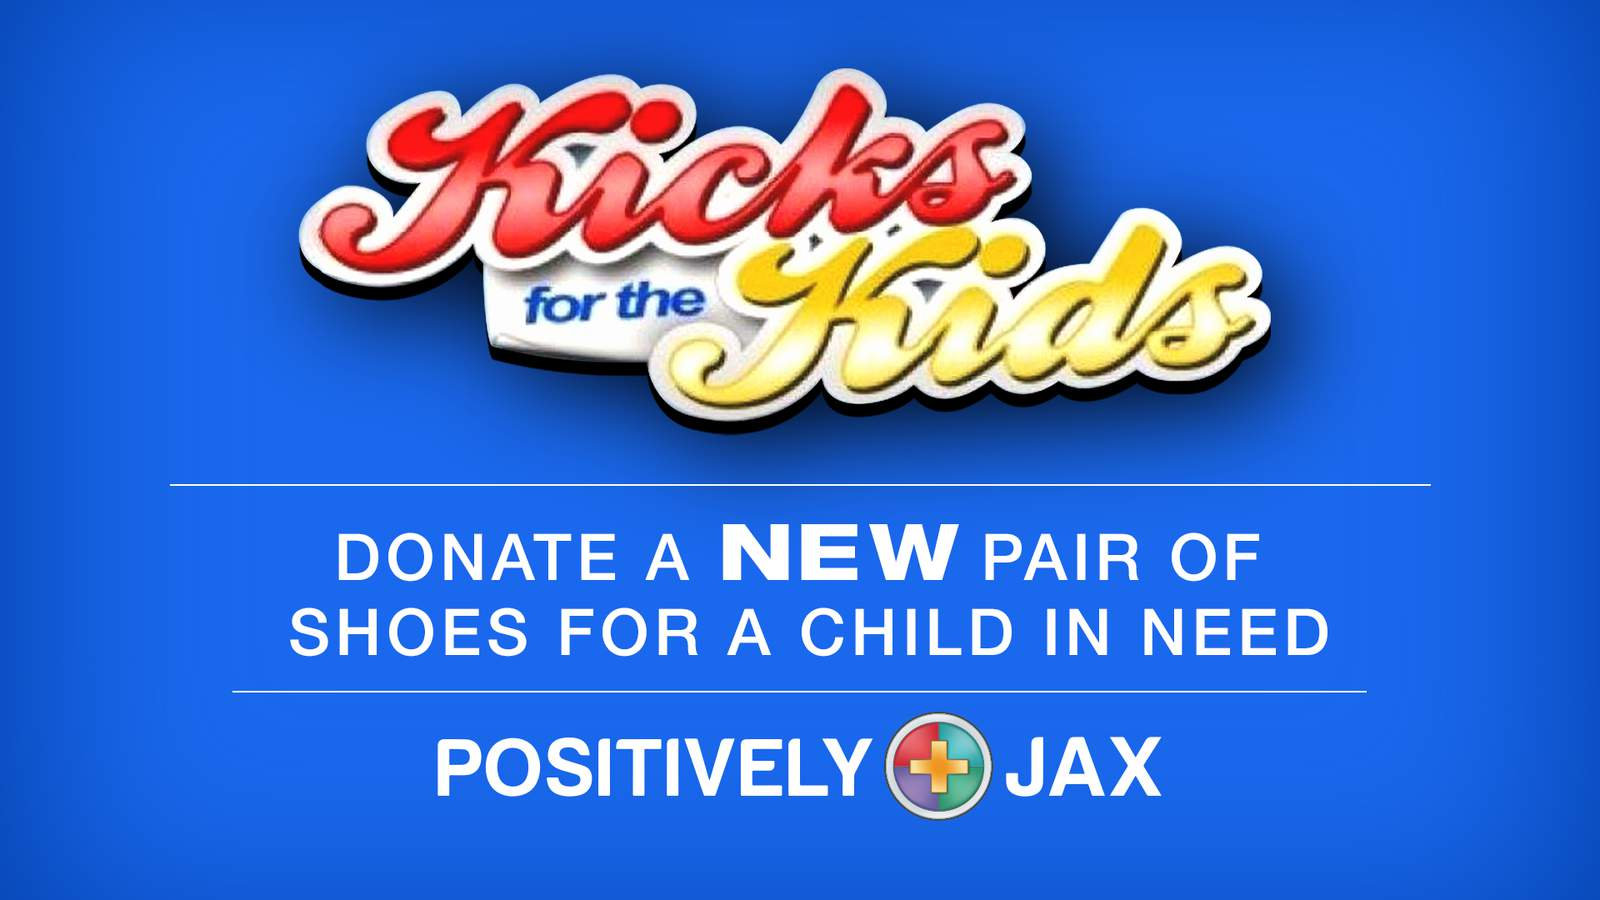 Donate shoes to Kicks for the Kids